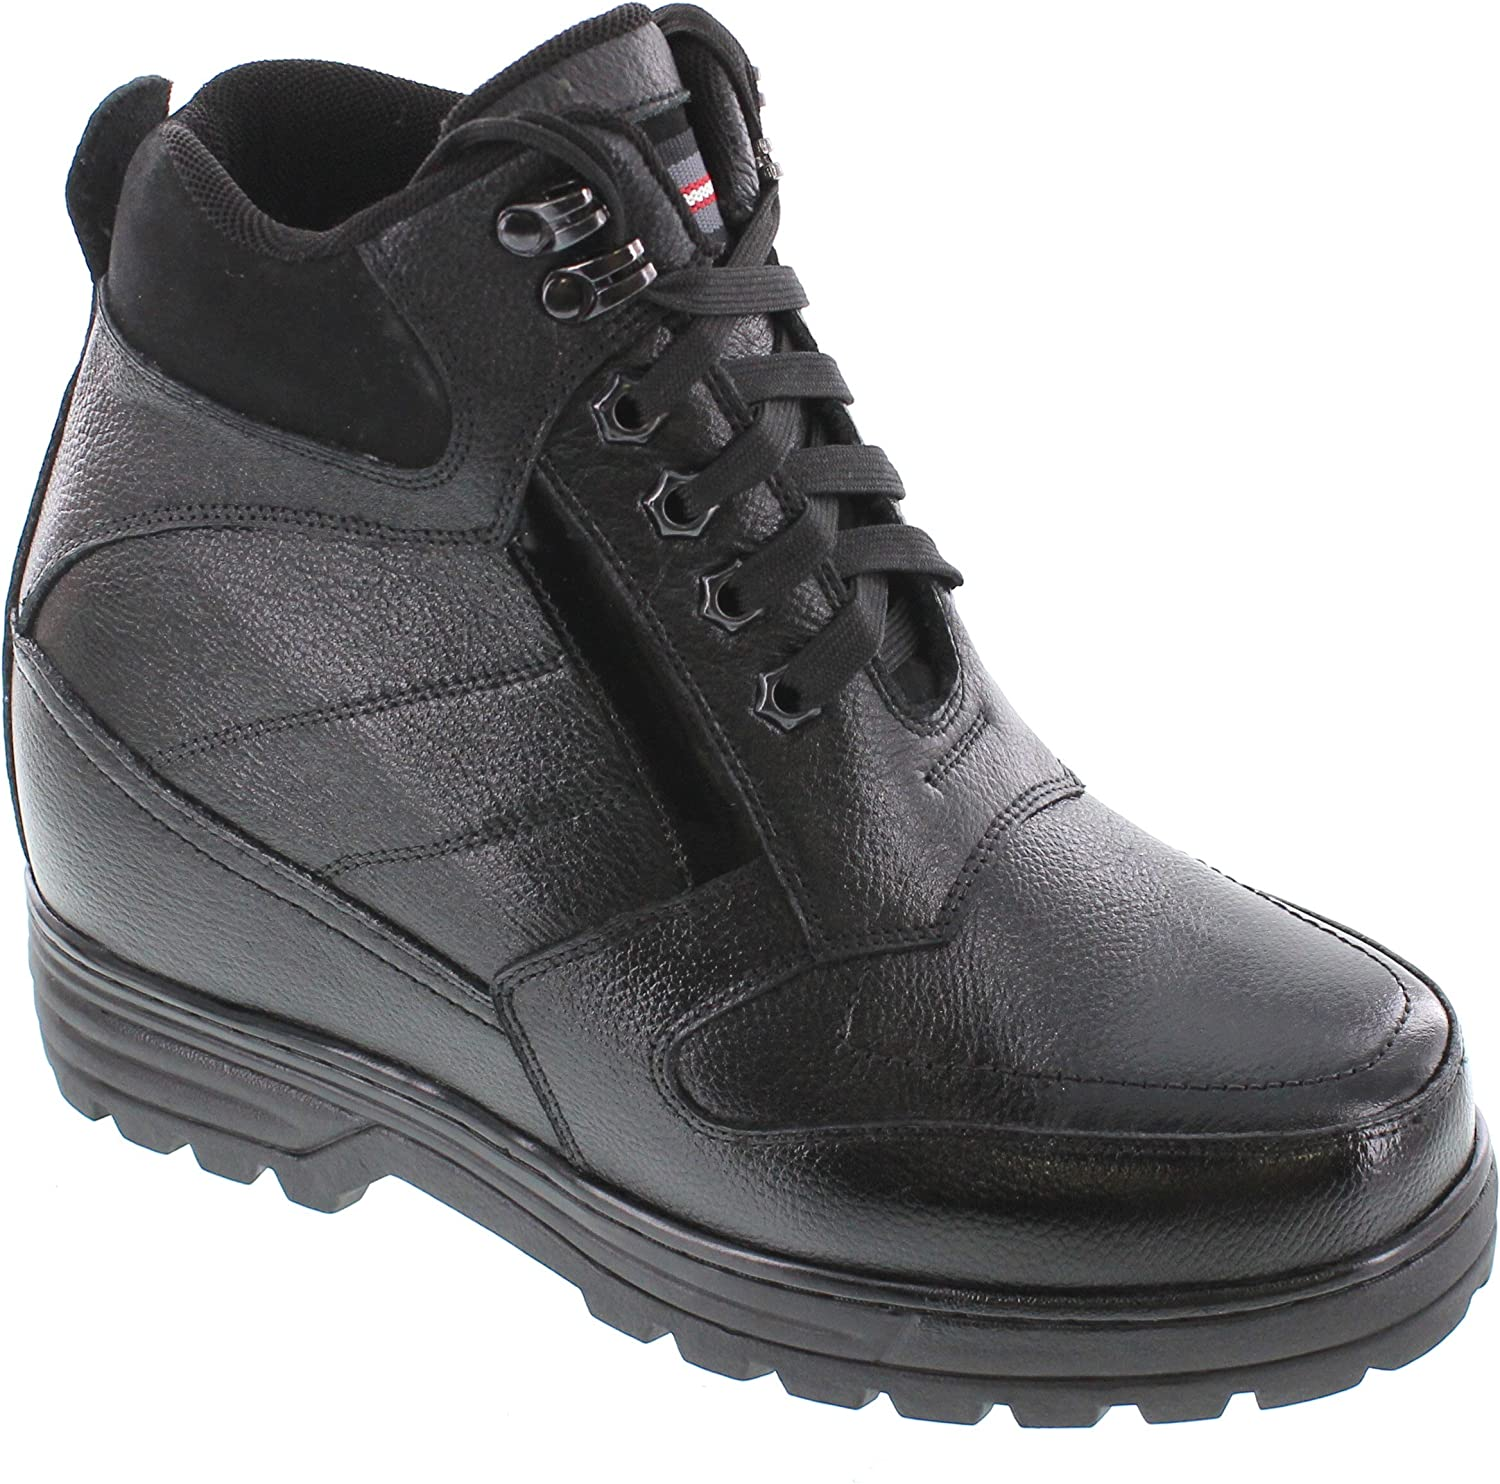 CALDEN - K881805-5.2 Inches Taller - Height Increasing Elevator shoes (Black Boots)